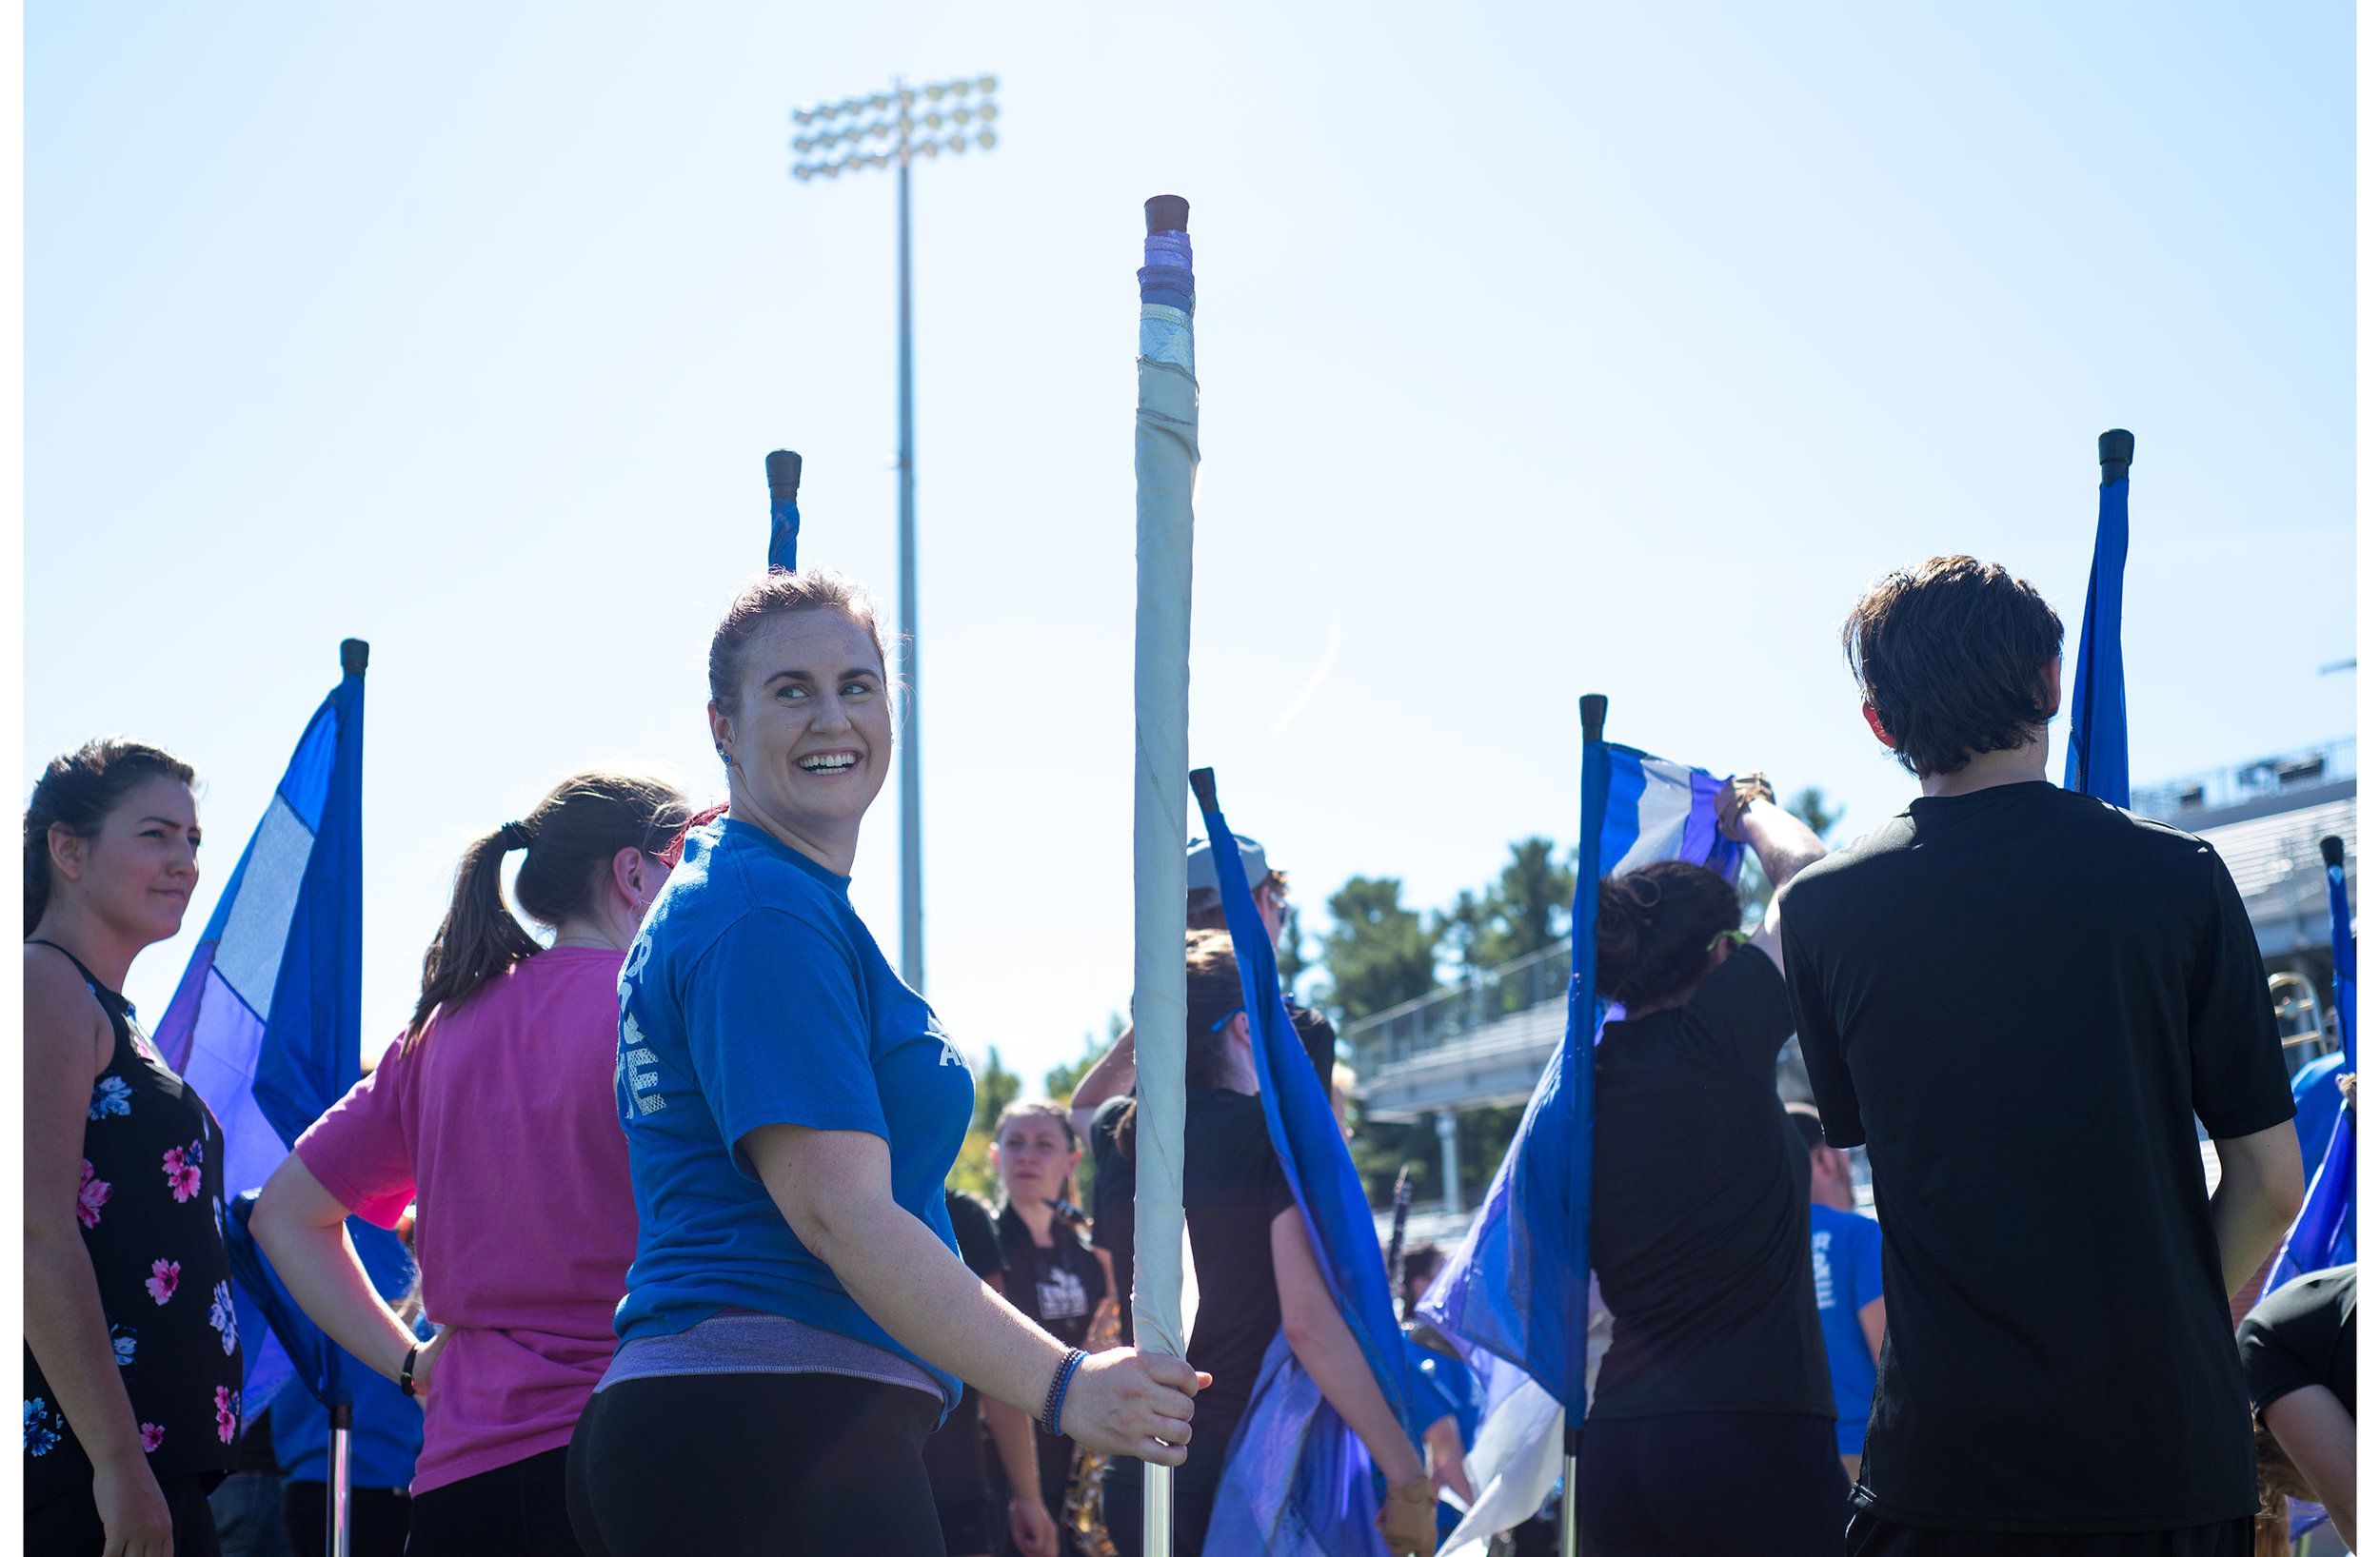 Loren-Marple_Photography_UNH-Homecoming-Alumni-Band_RS55455_LPM_7268.jpg